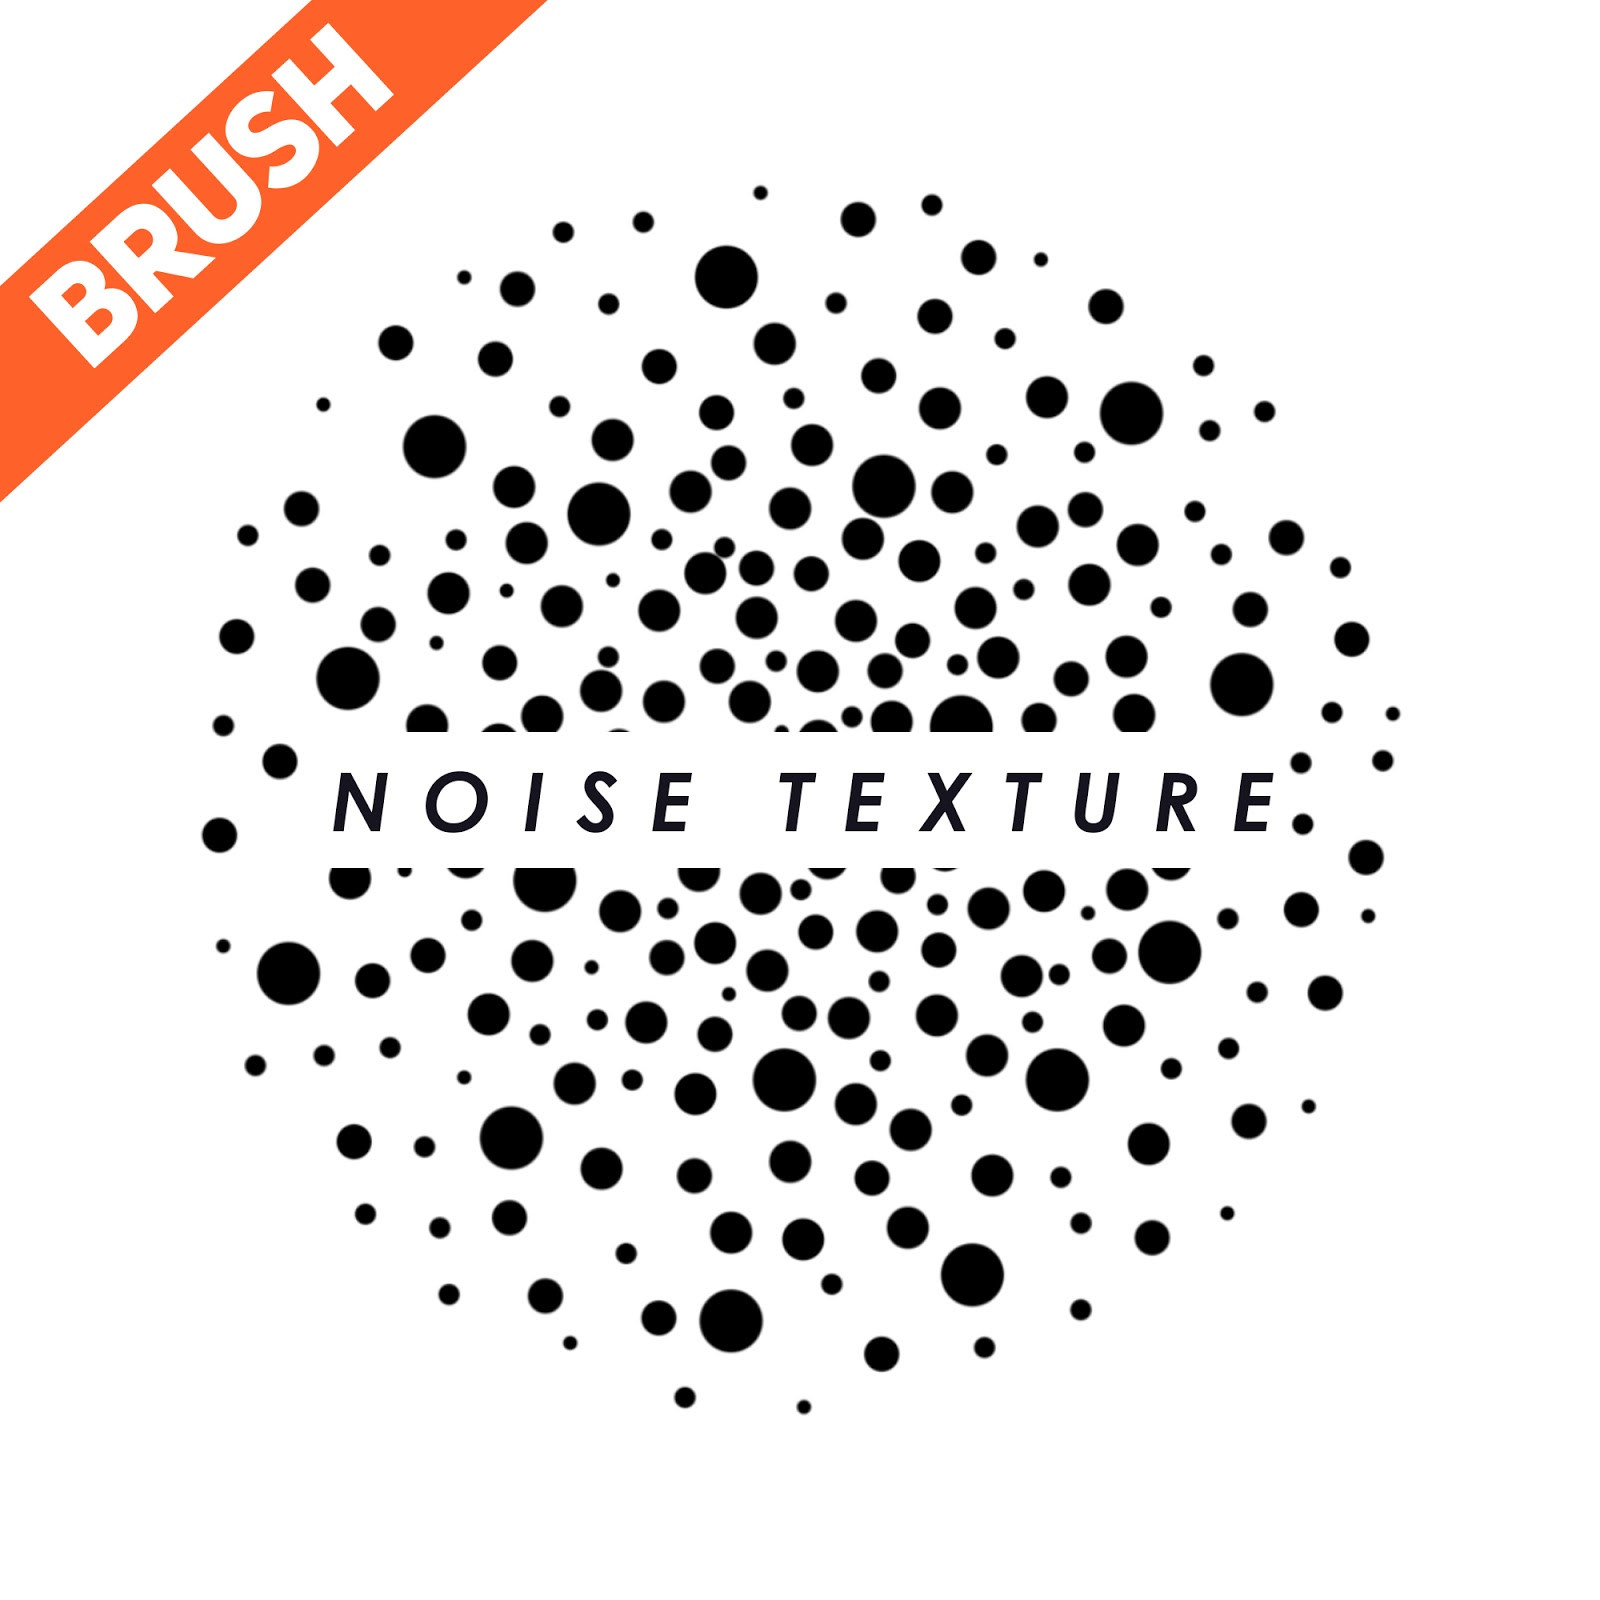 Free Download Noise Texture Brush - ABR File